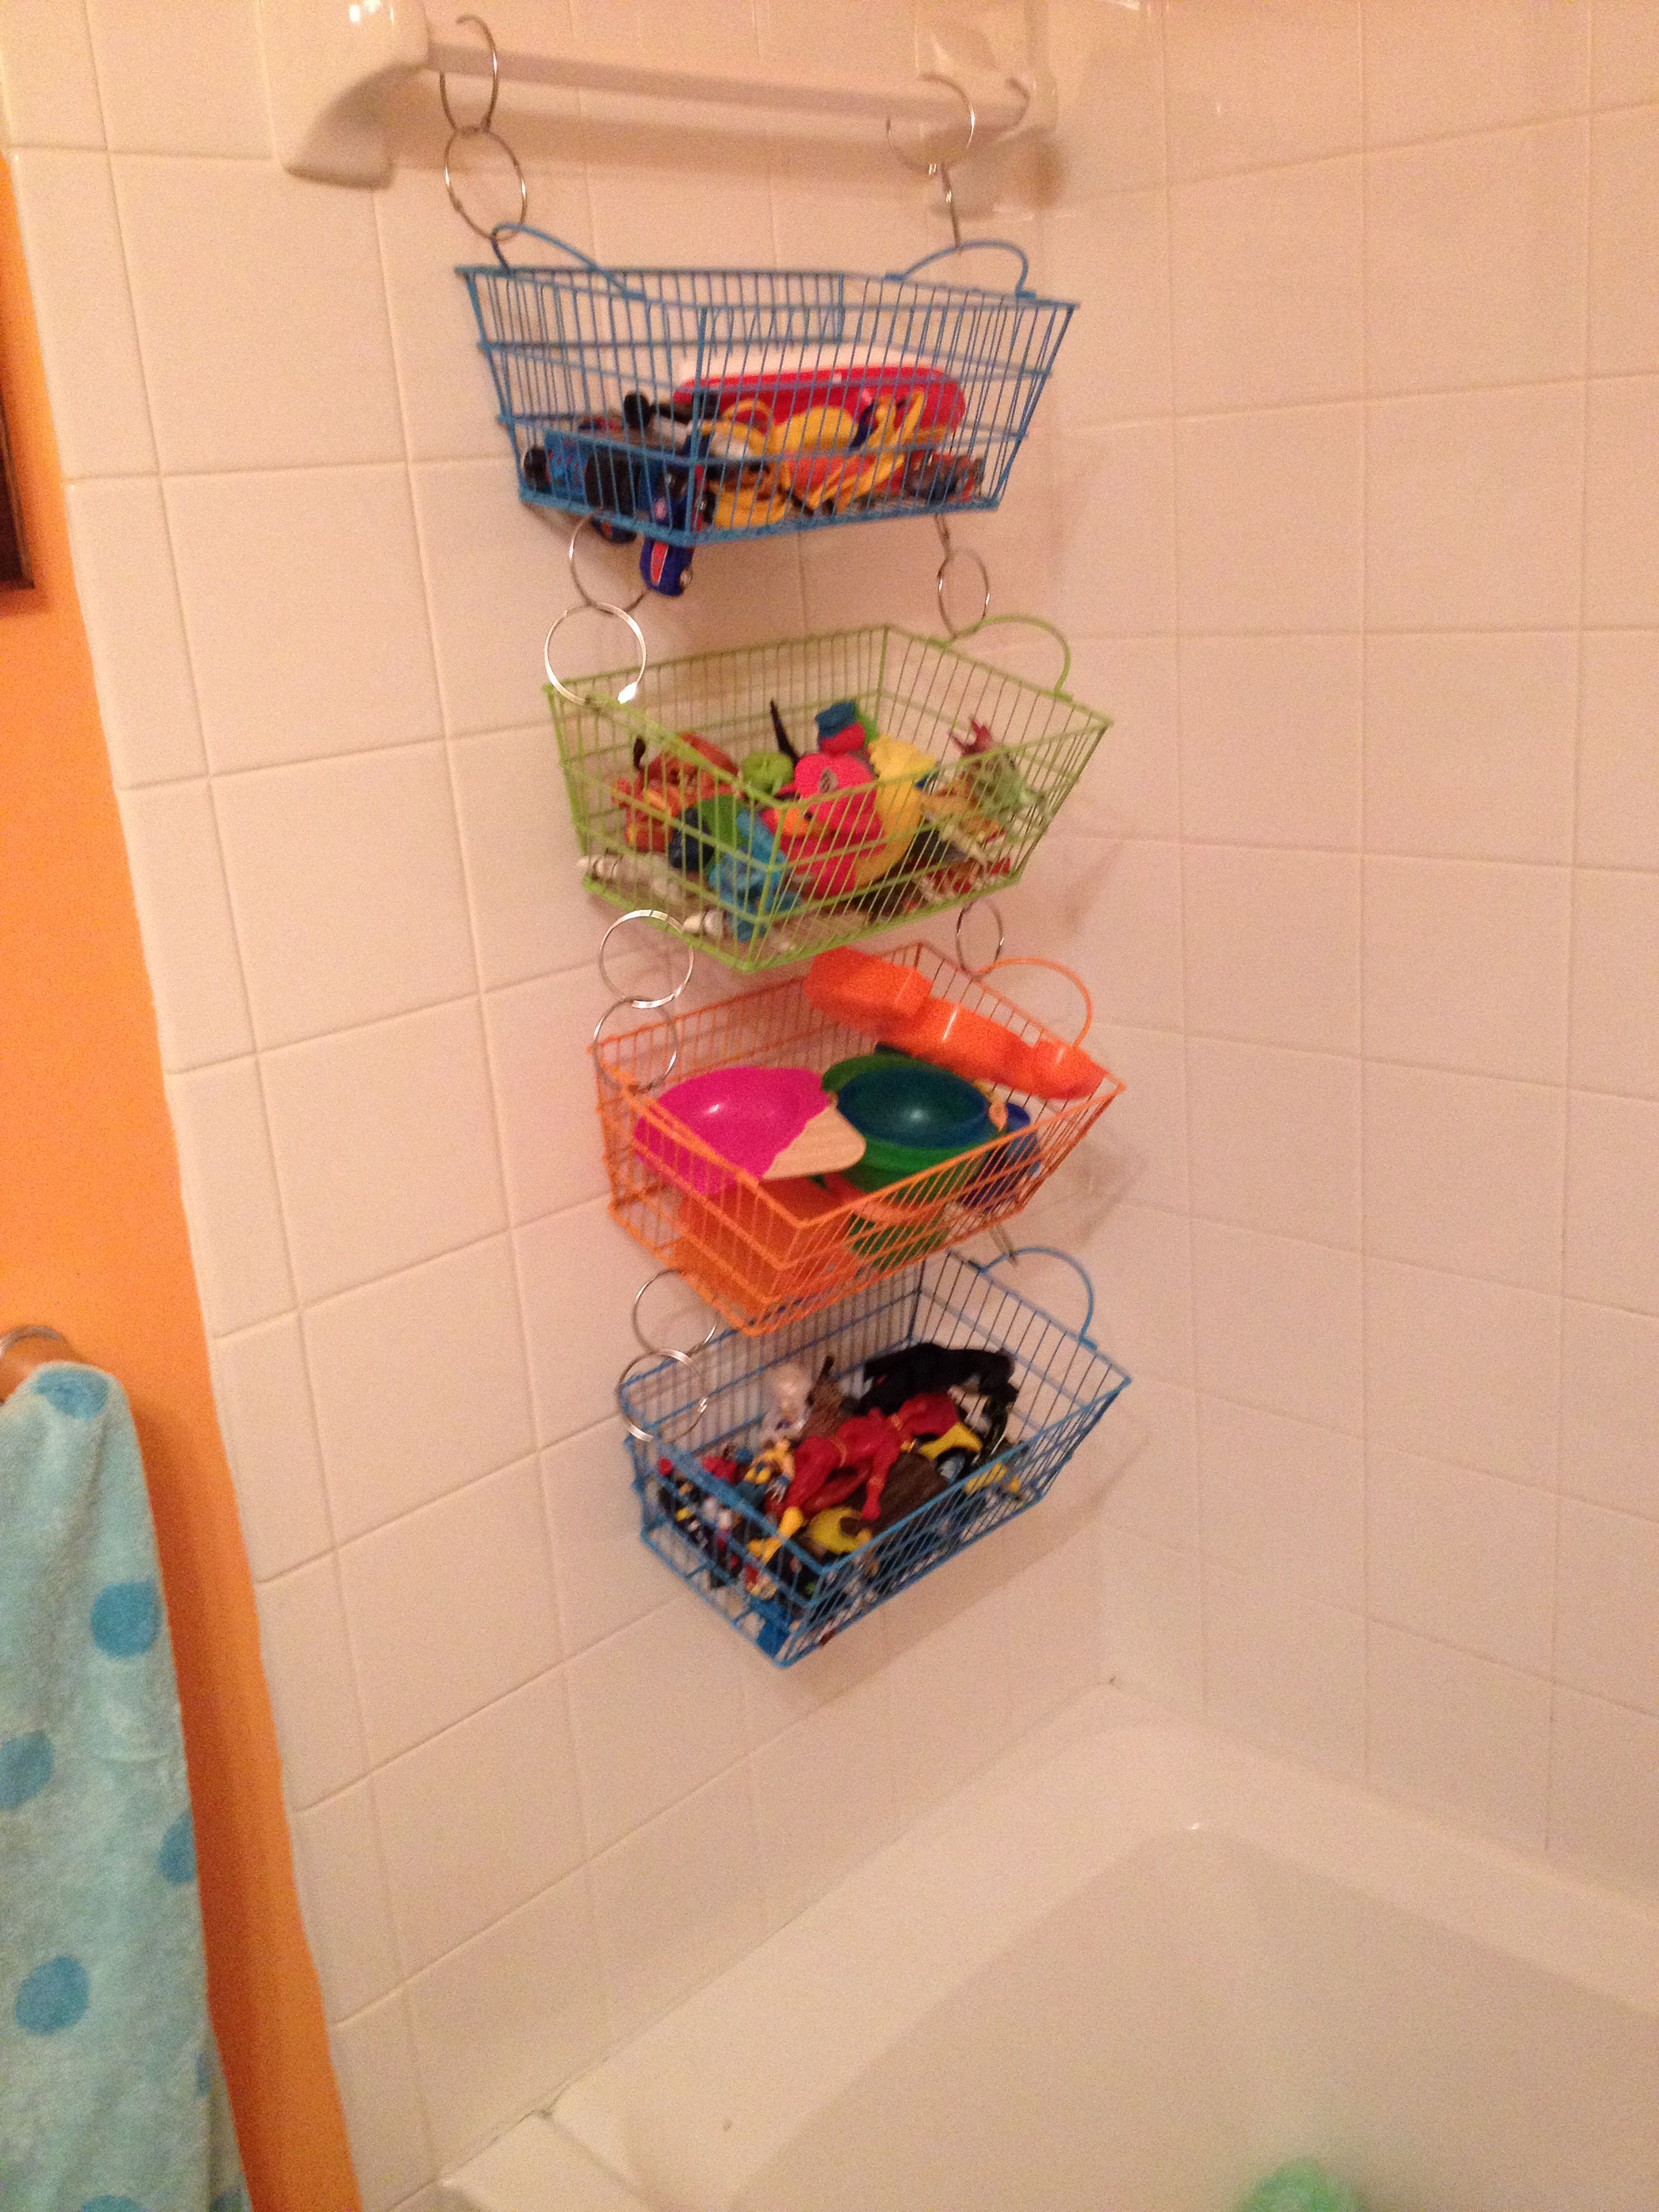 Tub toy organization rubbercoated baskets from below metal